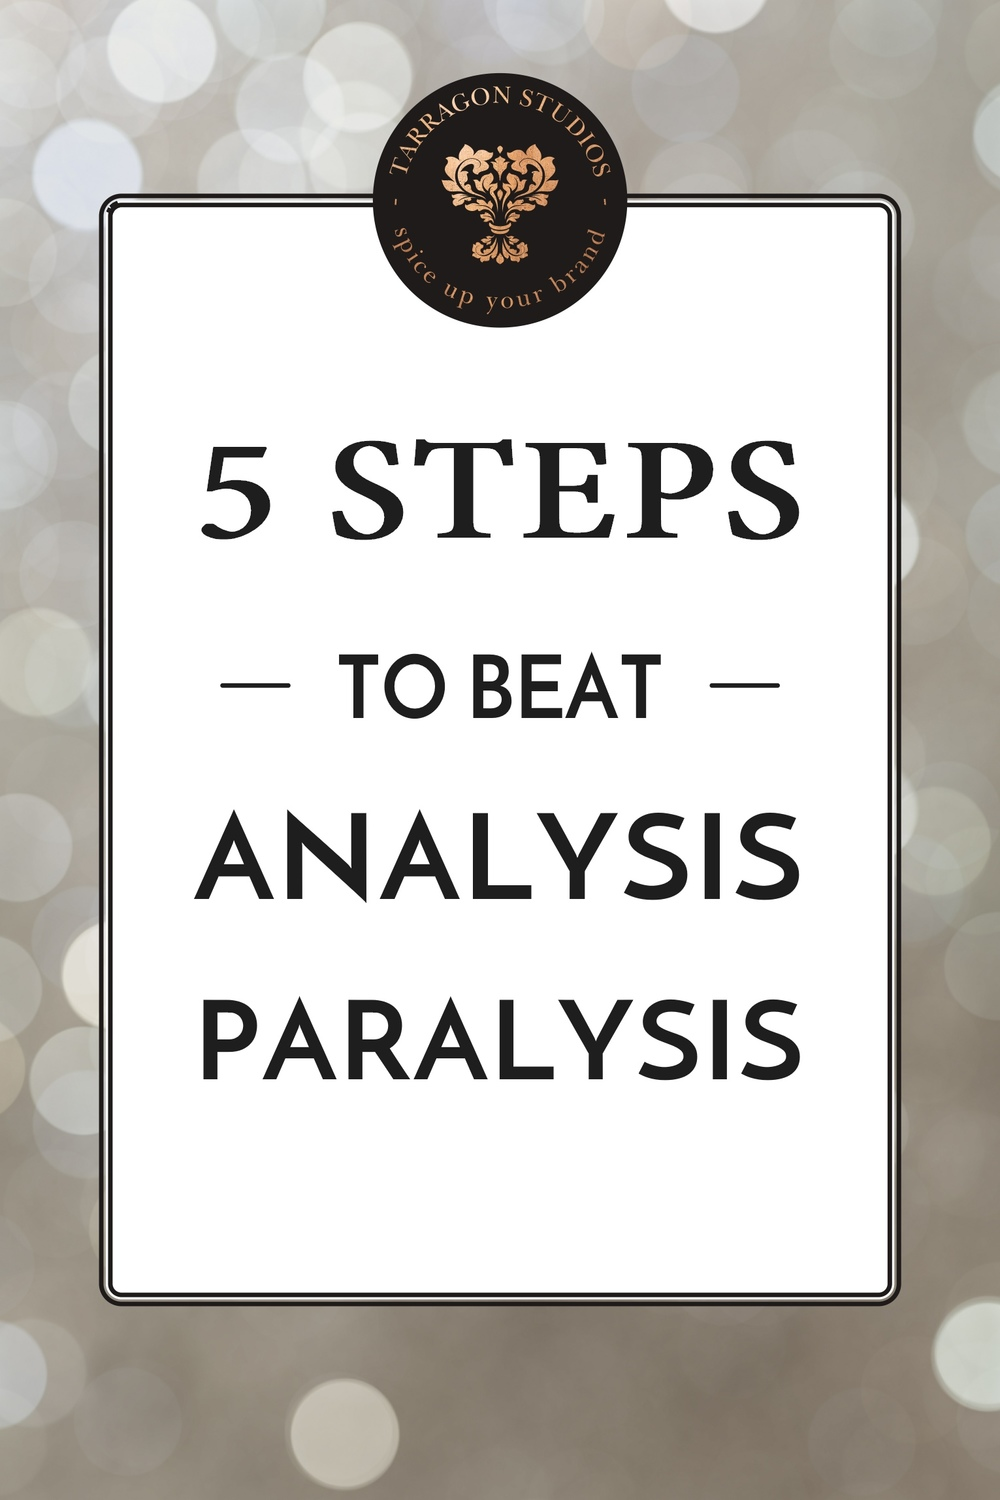 These 5 steps will help you beat analysis paralysis and move forward in your business ventures.